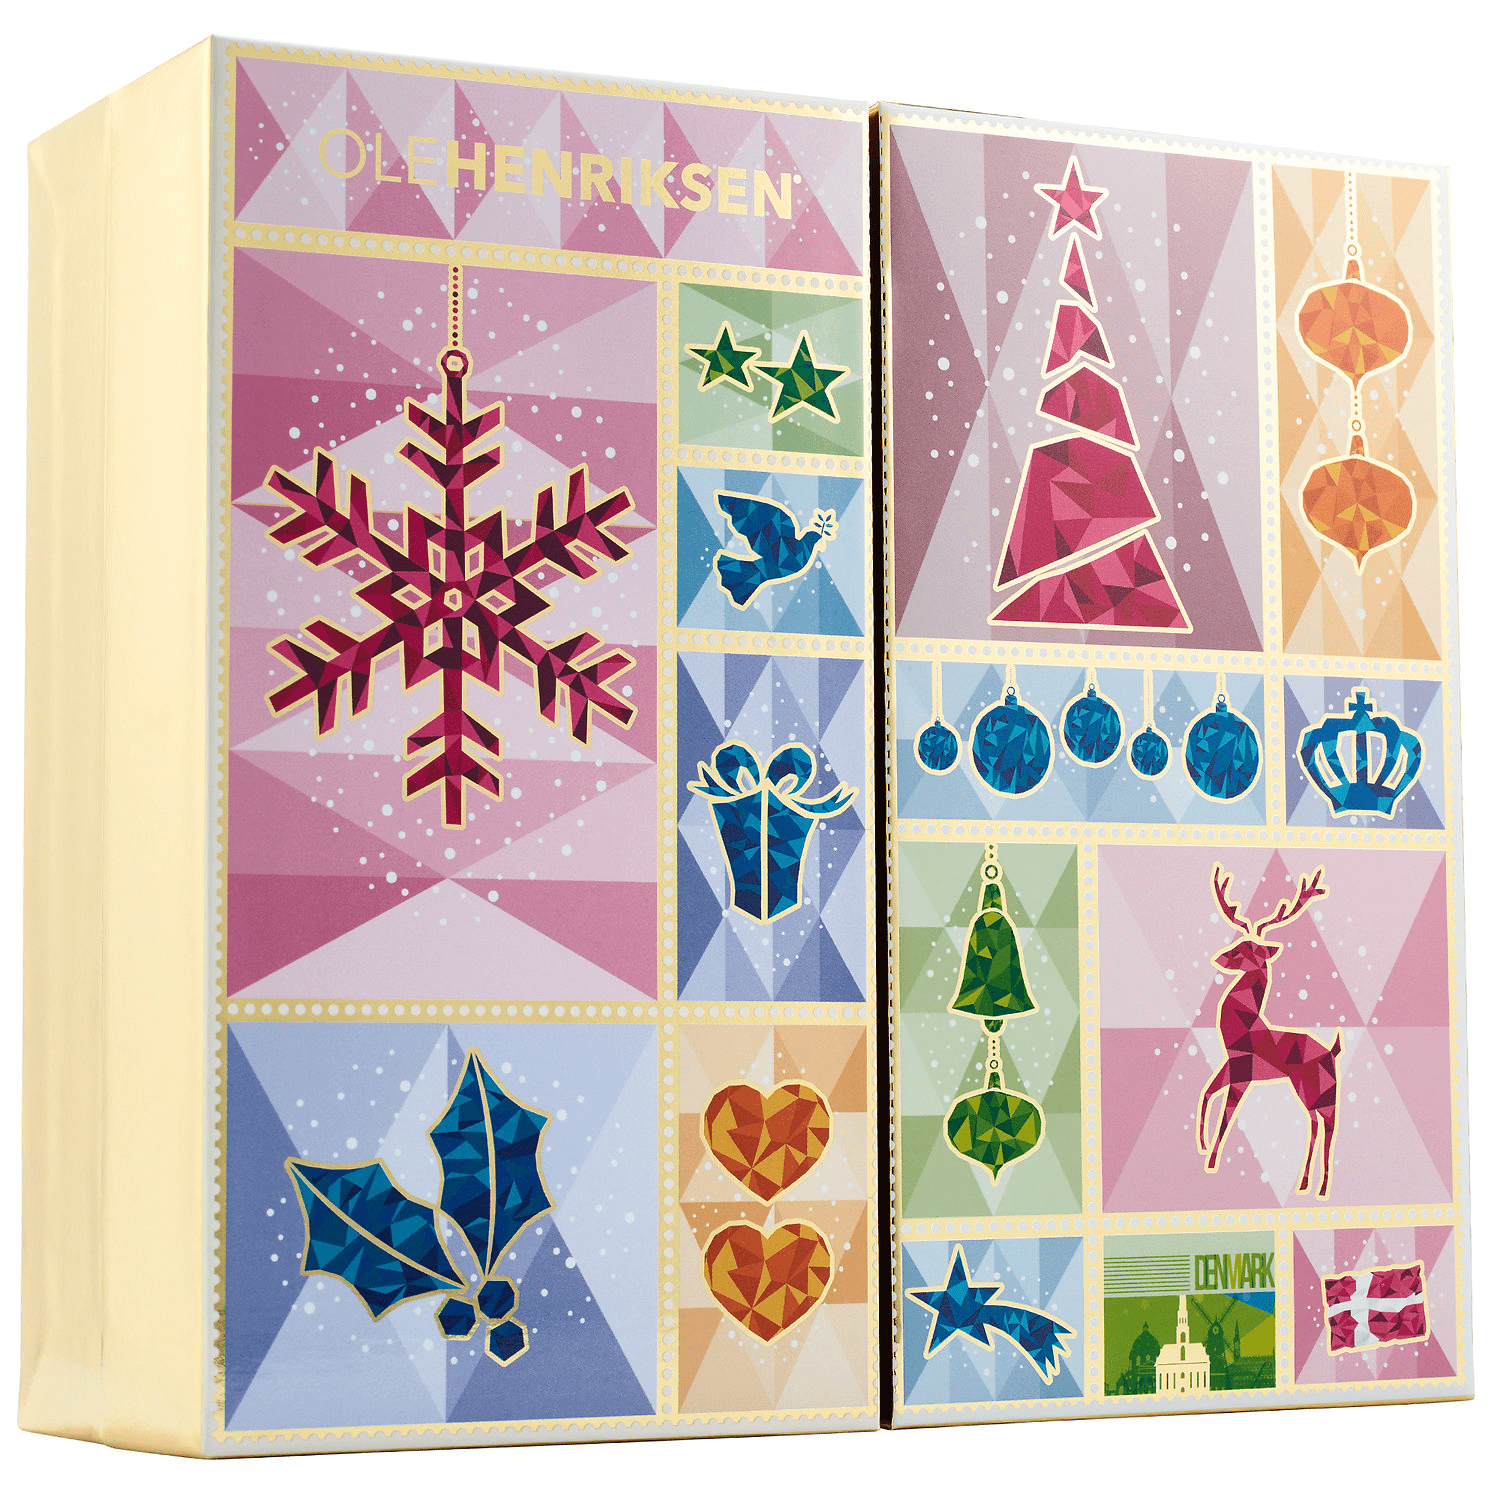 OLEHENRIKSEN Advent Calendar 2017 Available Now + Full Spoilers + Coupons!